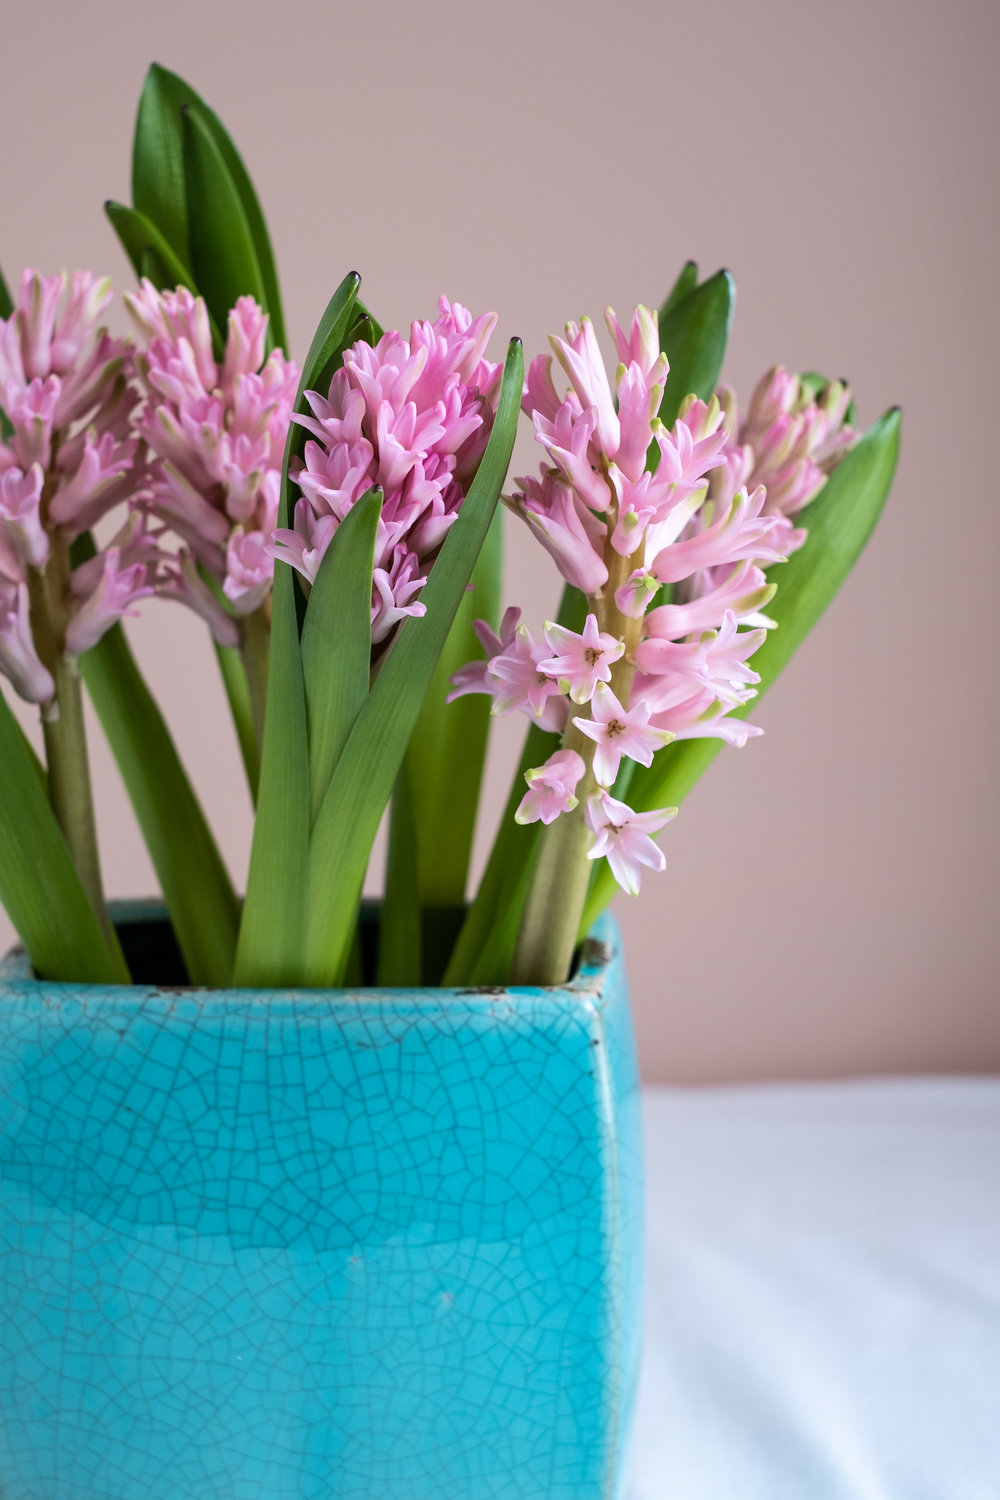 pink hyacinths in turquoise vase